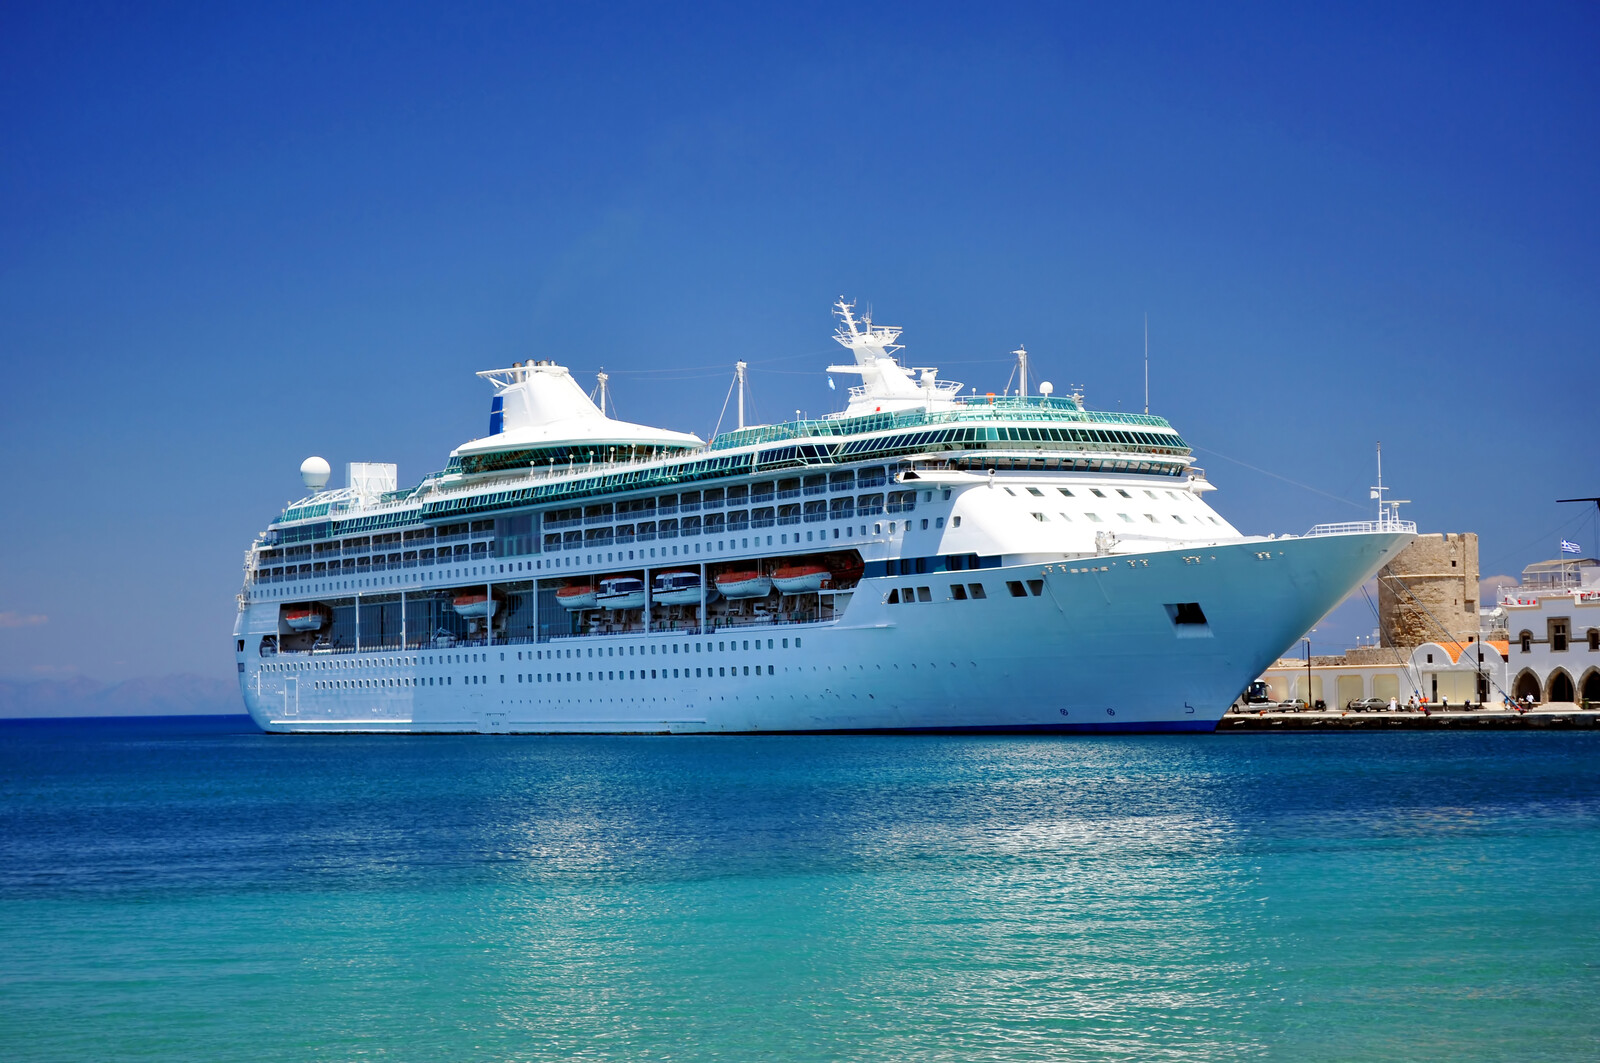 Large cruise ship sitting on the blue waters of the Mediterranean sea with blue skies